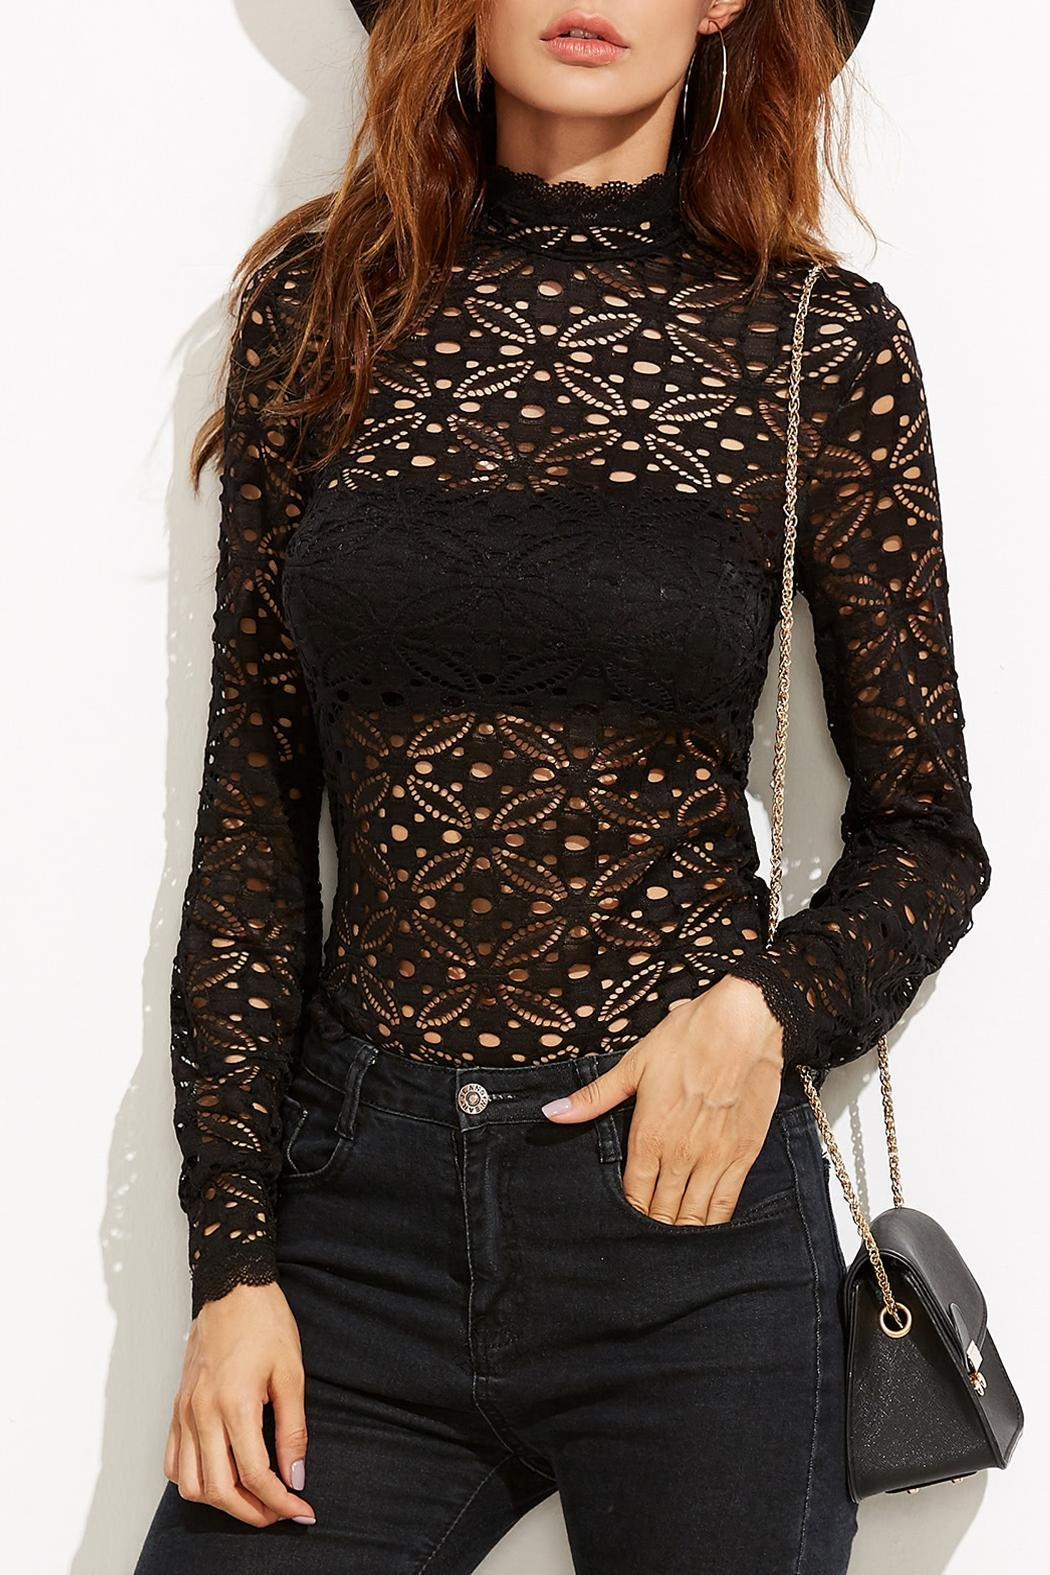 House of Atelier Floral Lace Blouse - Main Image